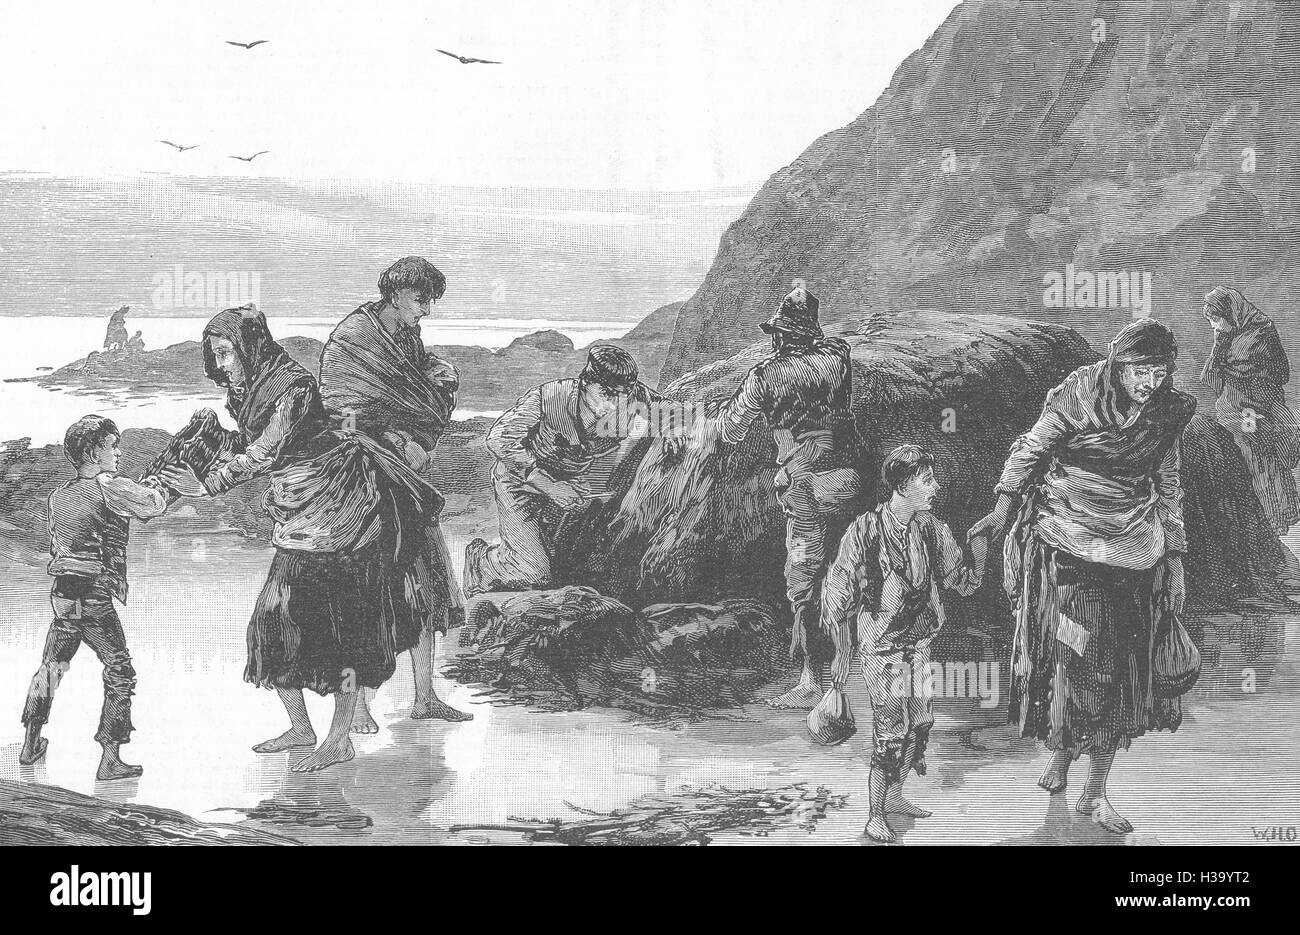 IRELAND Famine Collecting seaweed & limpets for food Inishboffin Island 1886. The Illustrated London News - Stock Image